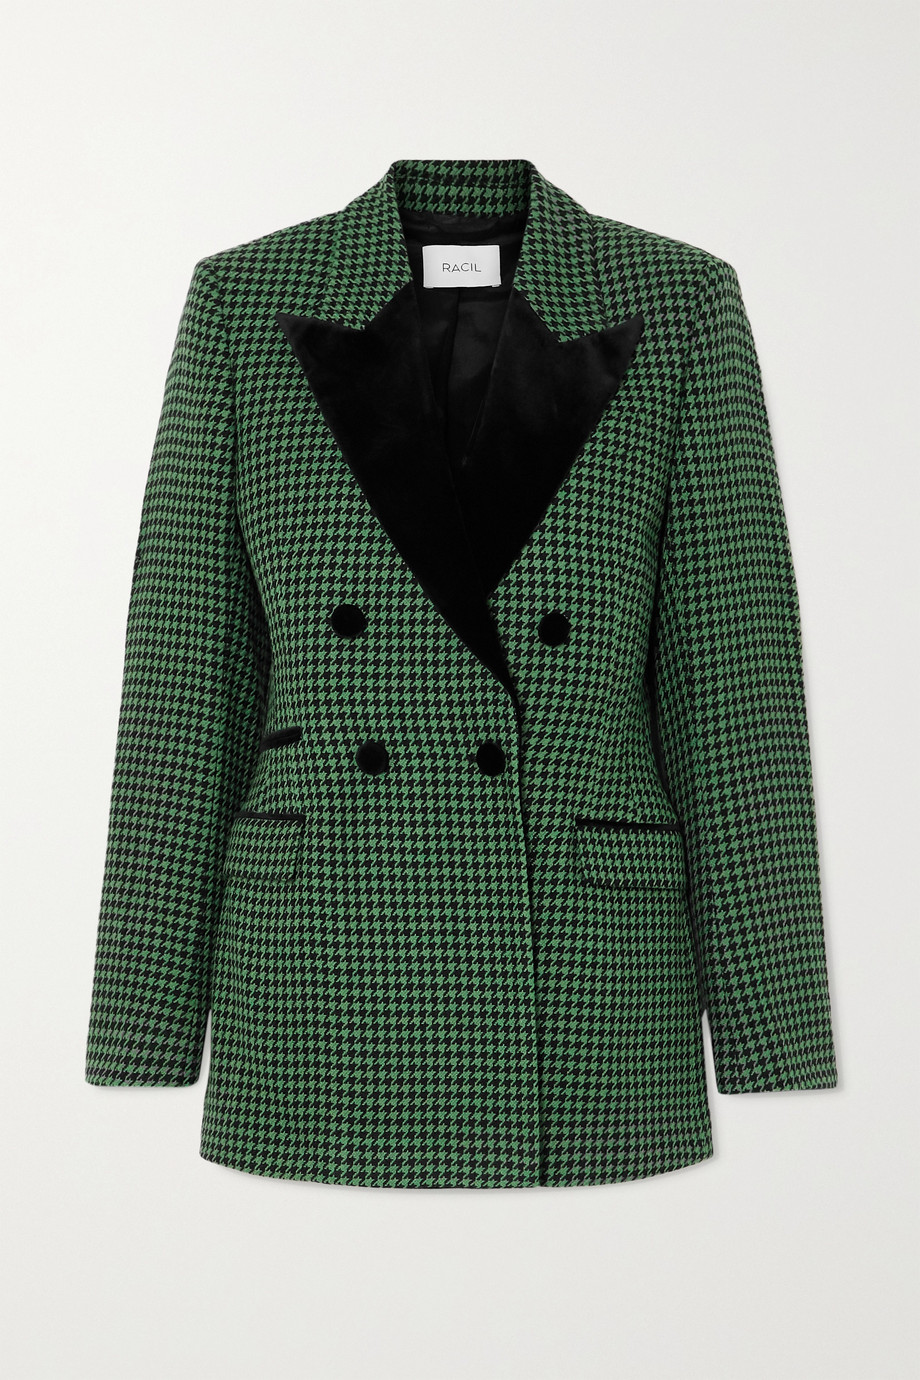 Racil Oxford double-breasted velvet-trimmed houndstooth wool-blend tweed blazer